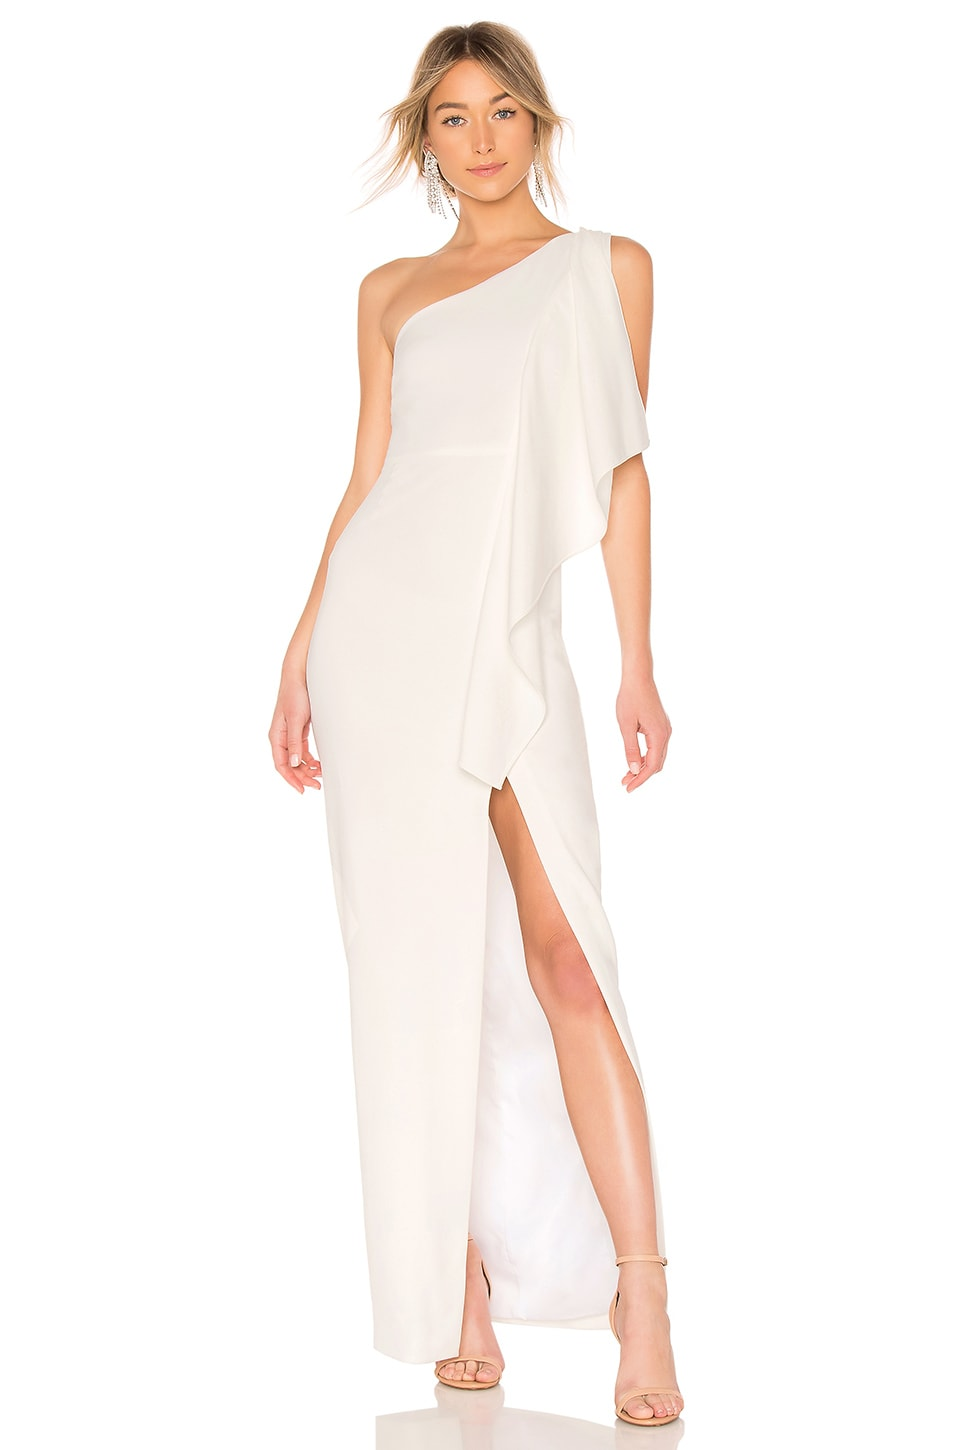 LIKELY Sienna Gown in White